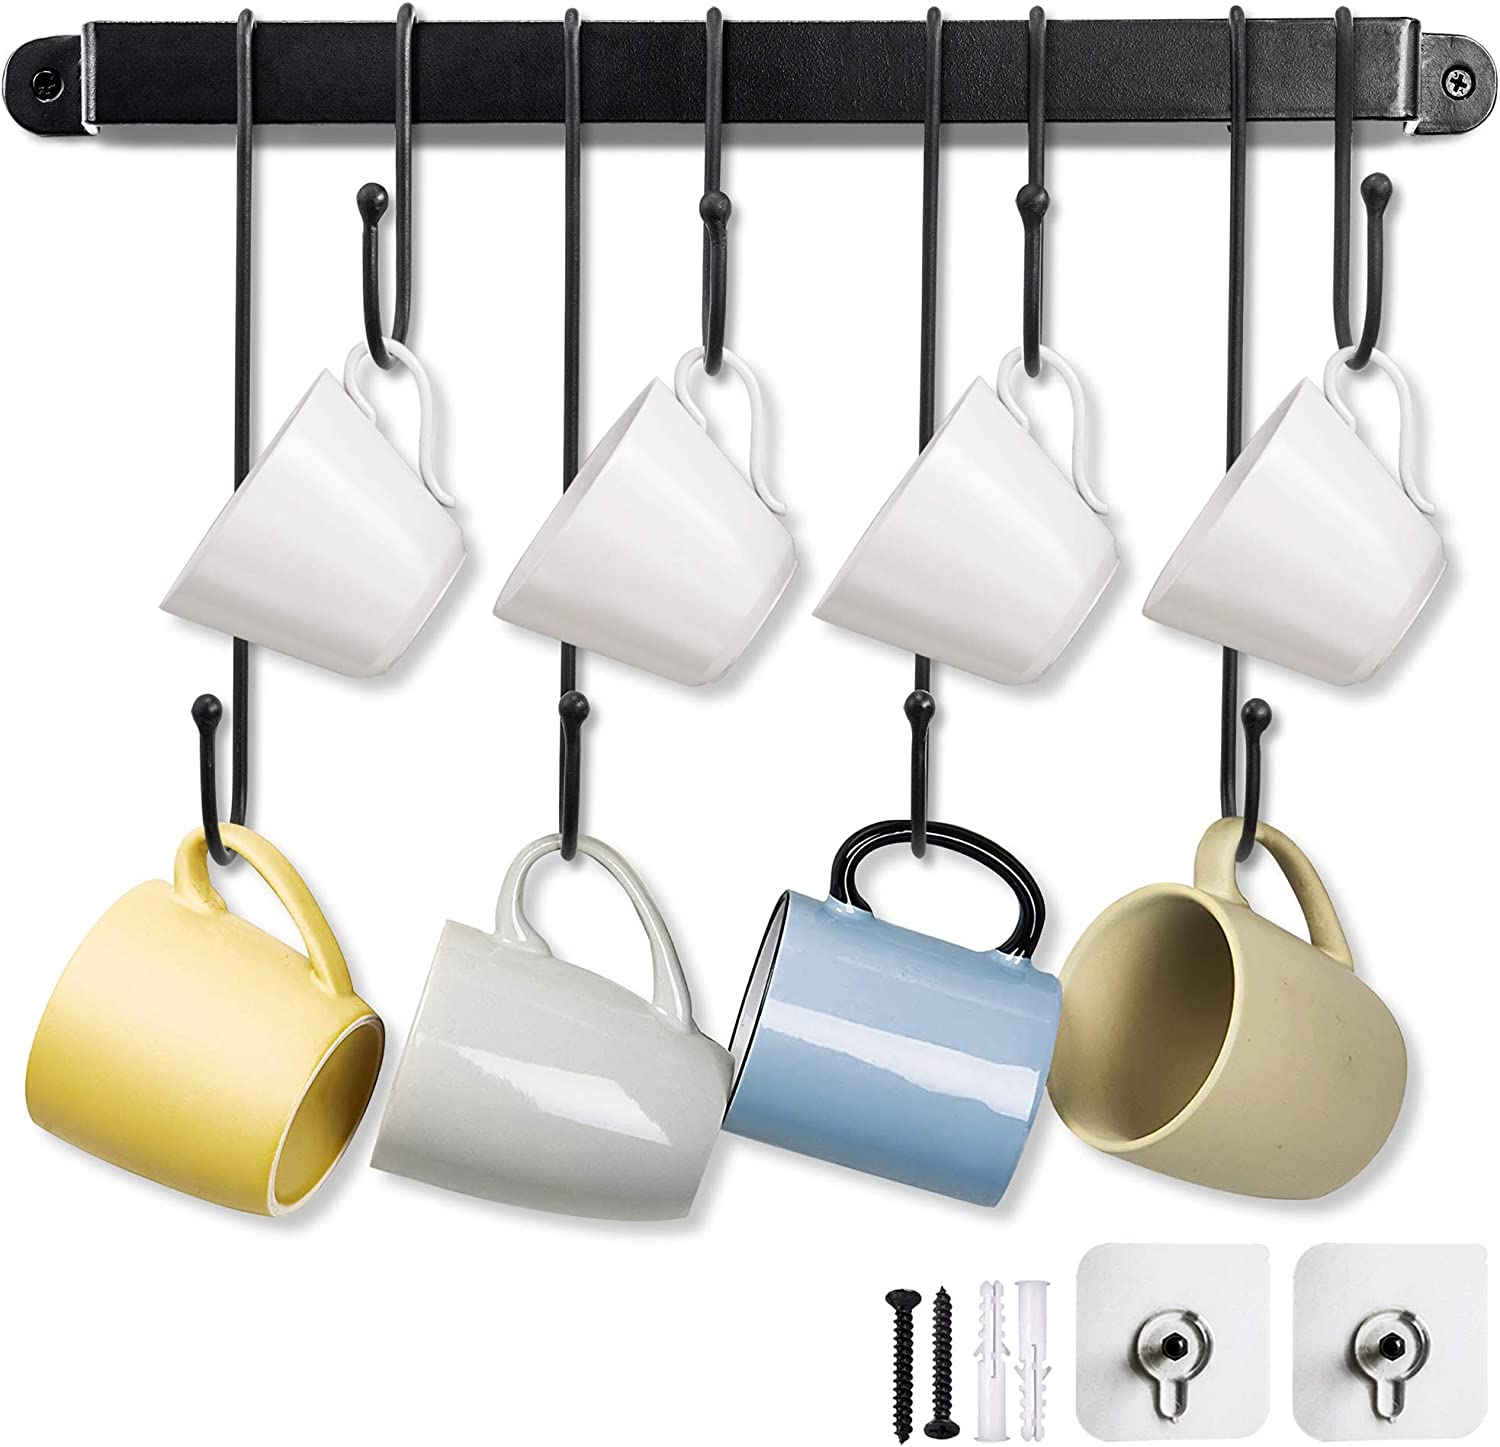 Coffee Mug Translated Rack 17 Inches Wall Rem with and New products, world's highest quality popular! Adjustable